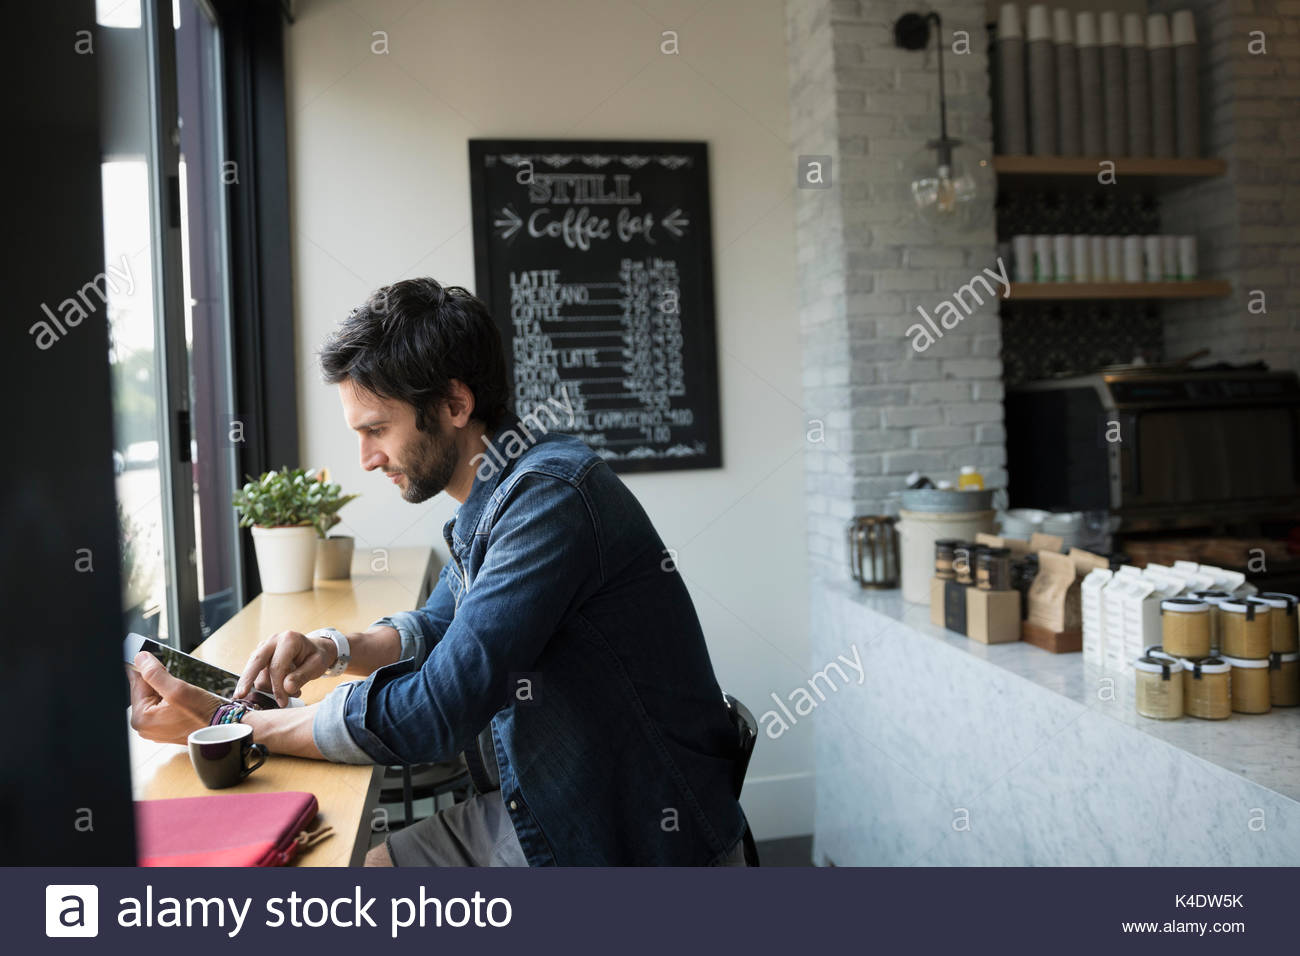 Man using digital tablet at cafe window - Stock Image